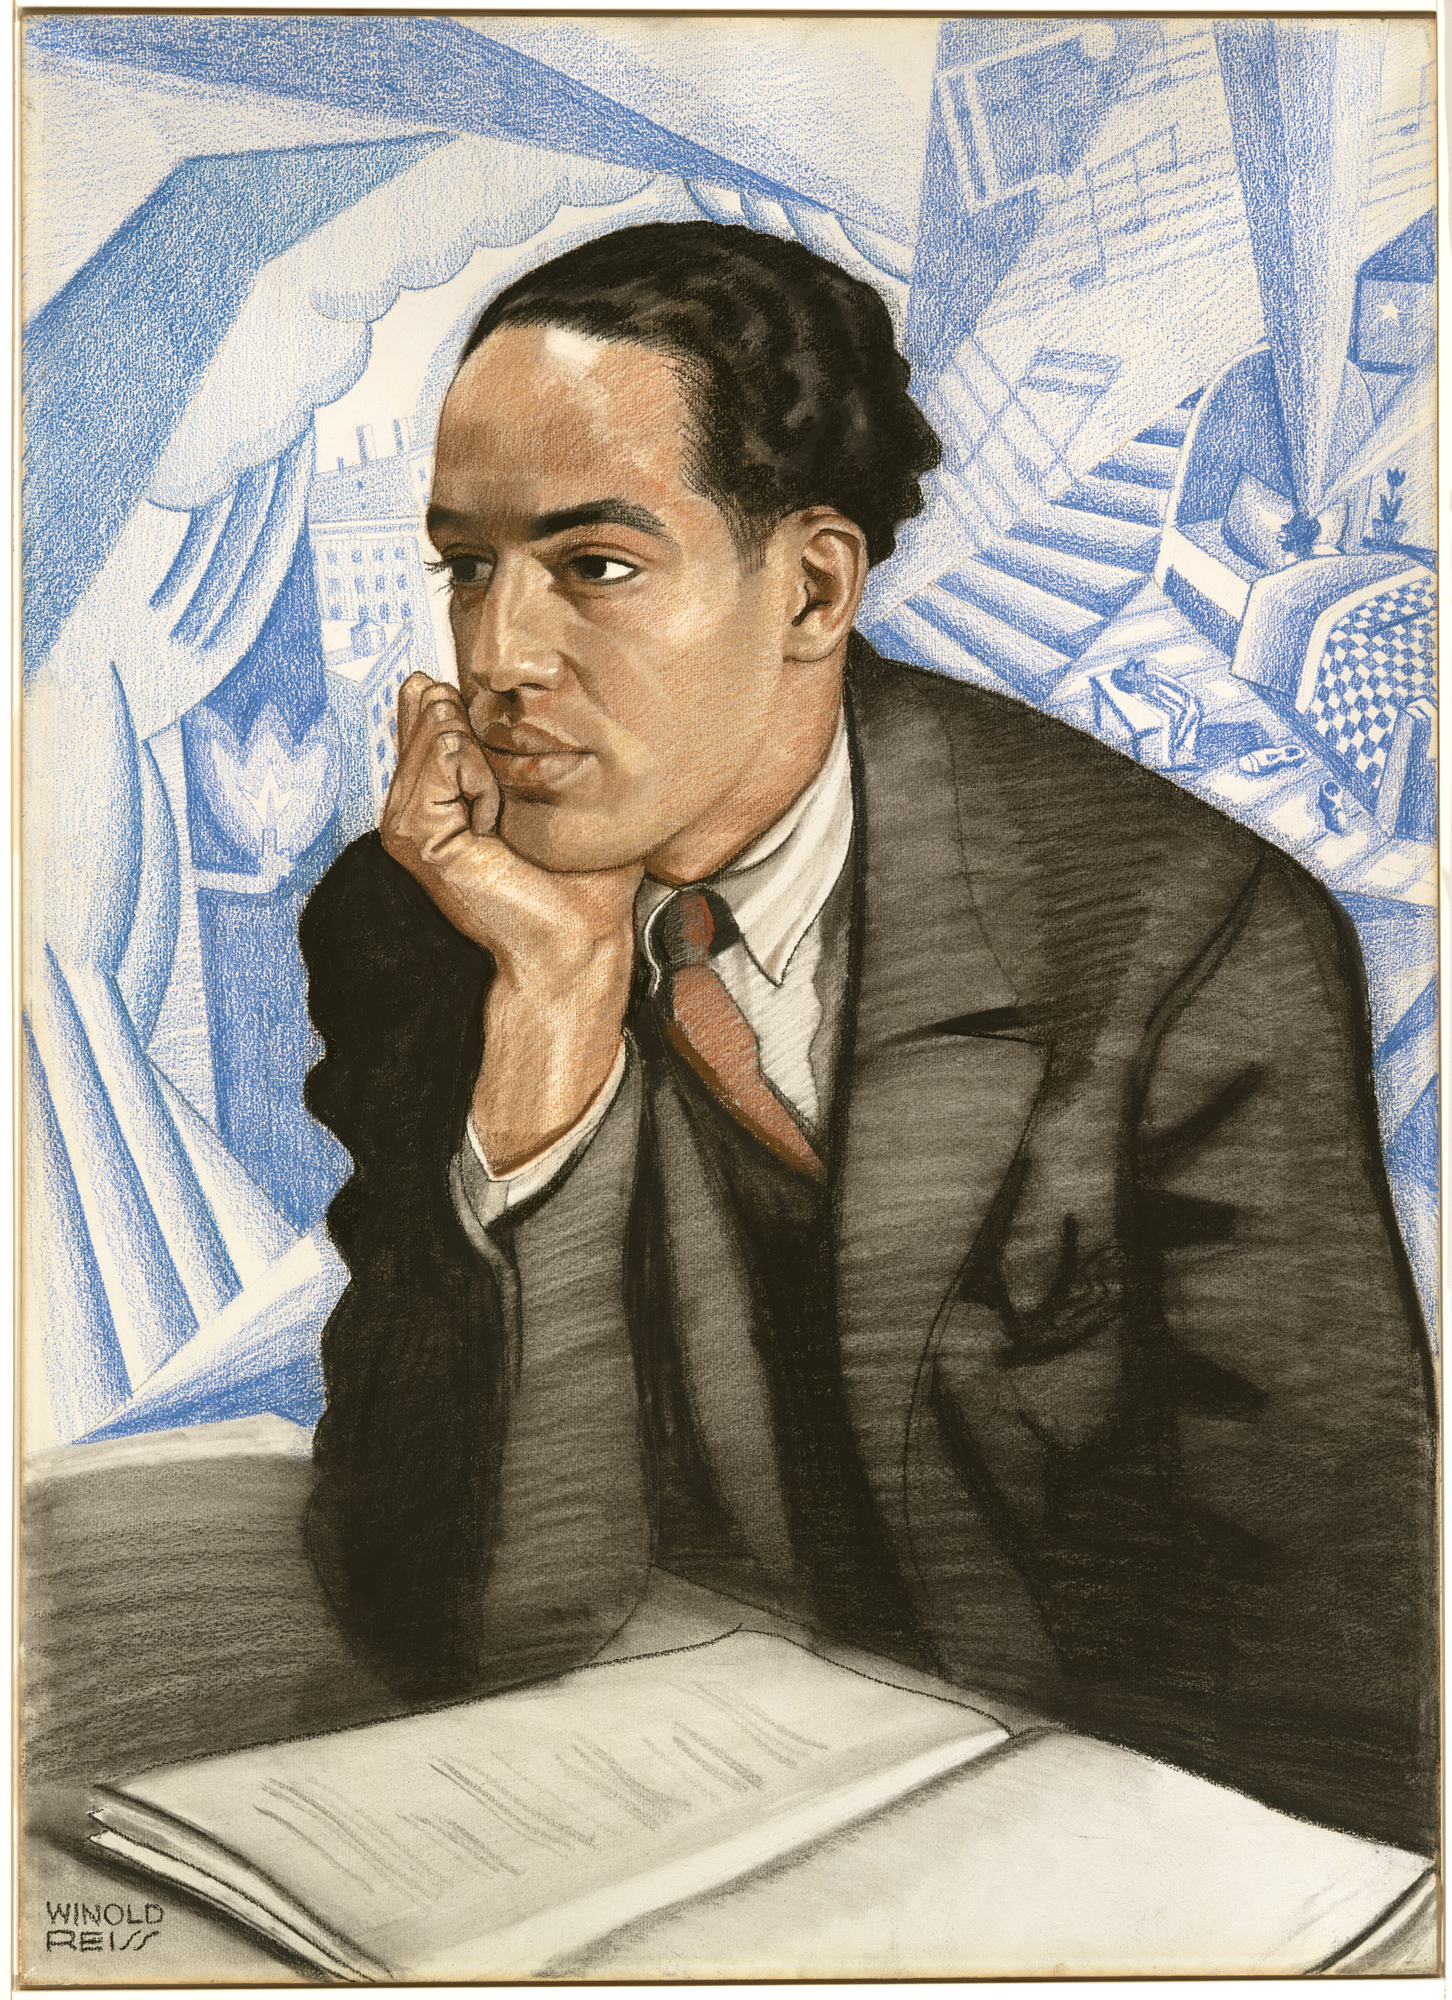 langston hughes and national identity Enjoy the best langston hughes quotes at brainyquote quotations by langston hughes, american poet, born february 1, 1902  these were performed on major national .